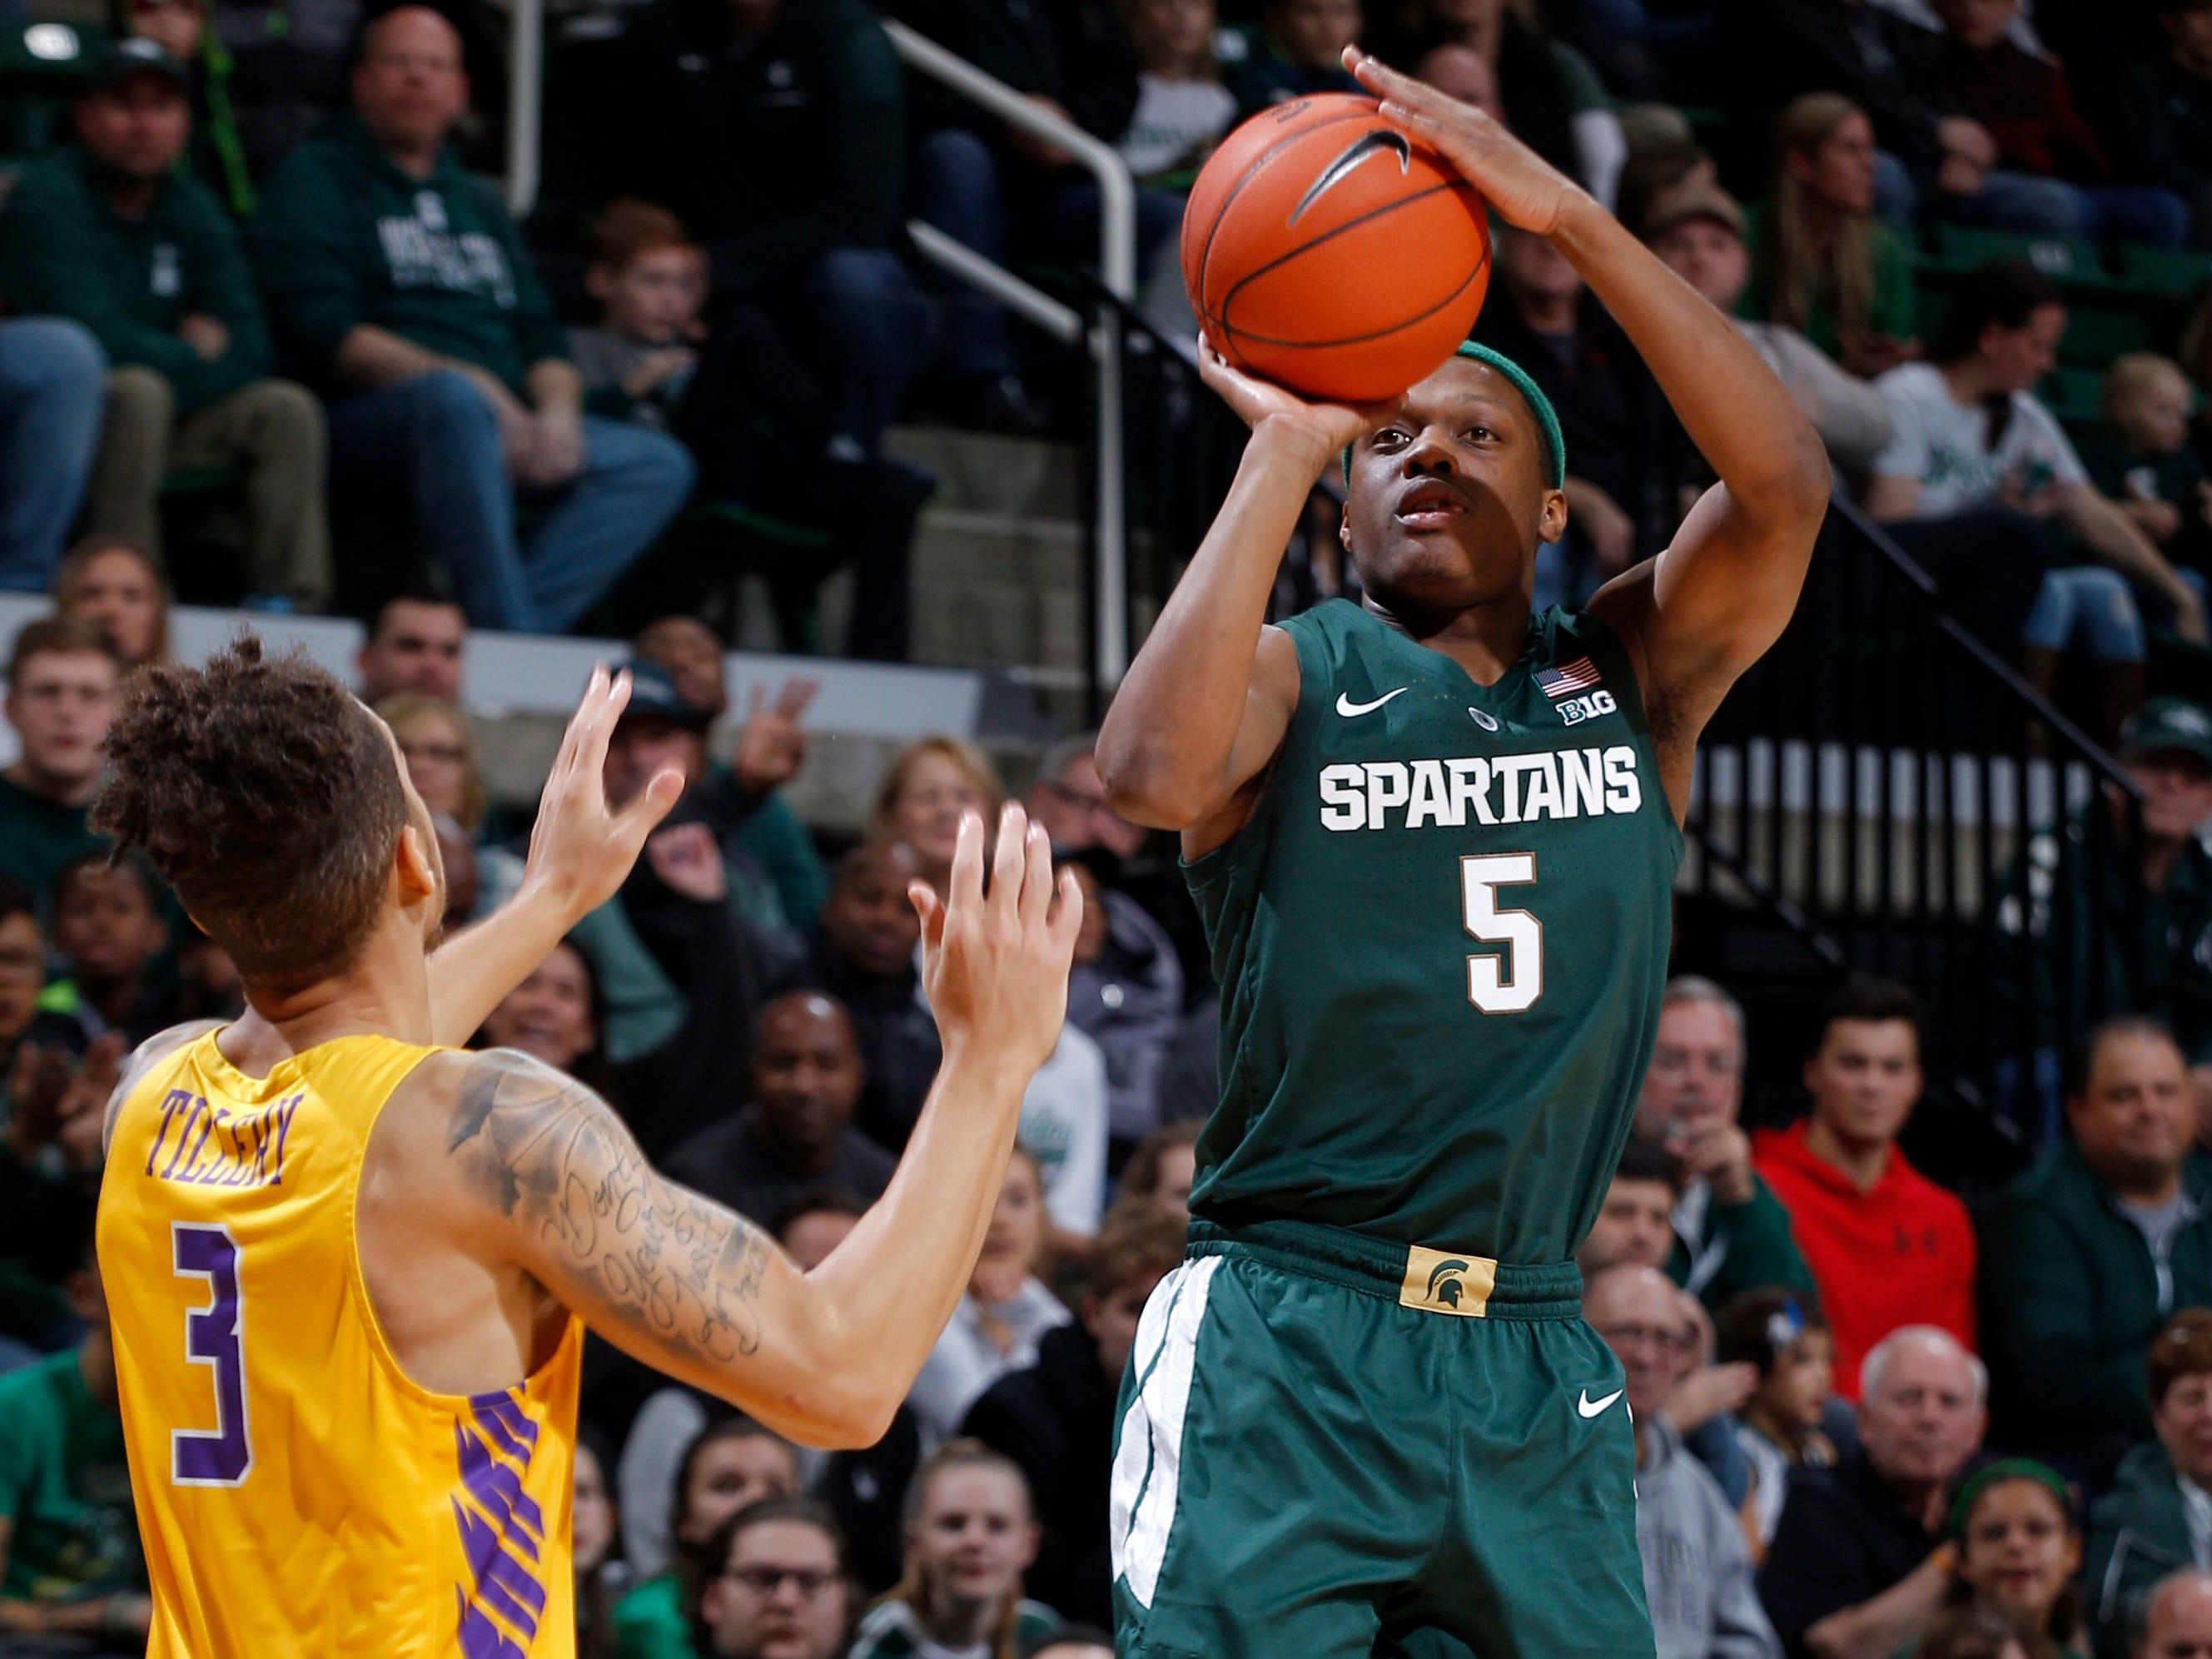 Michigan State's Cassius Winston, right, shoots against Tennessee Tech's Corey Tillery (3) during the first half of MSU's 101-33 win on Sunday, Nov. 18, 2018, in East Lansing.